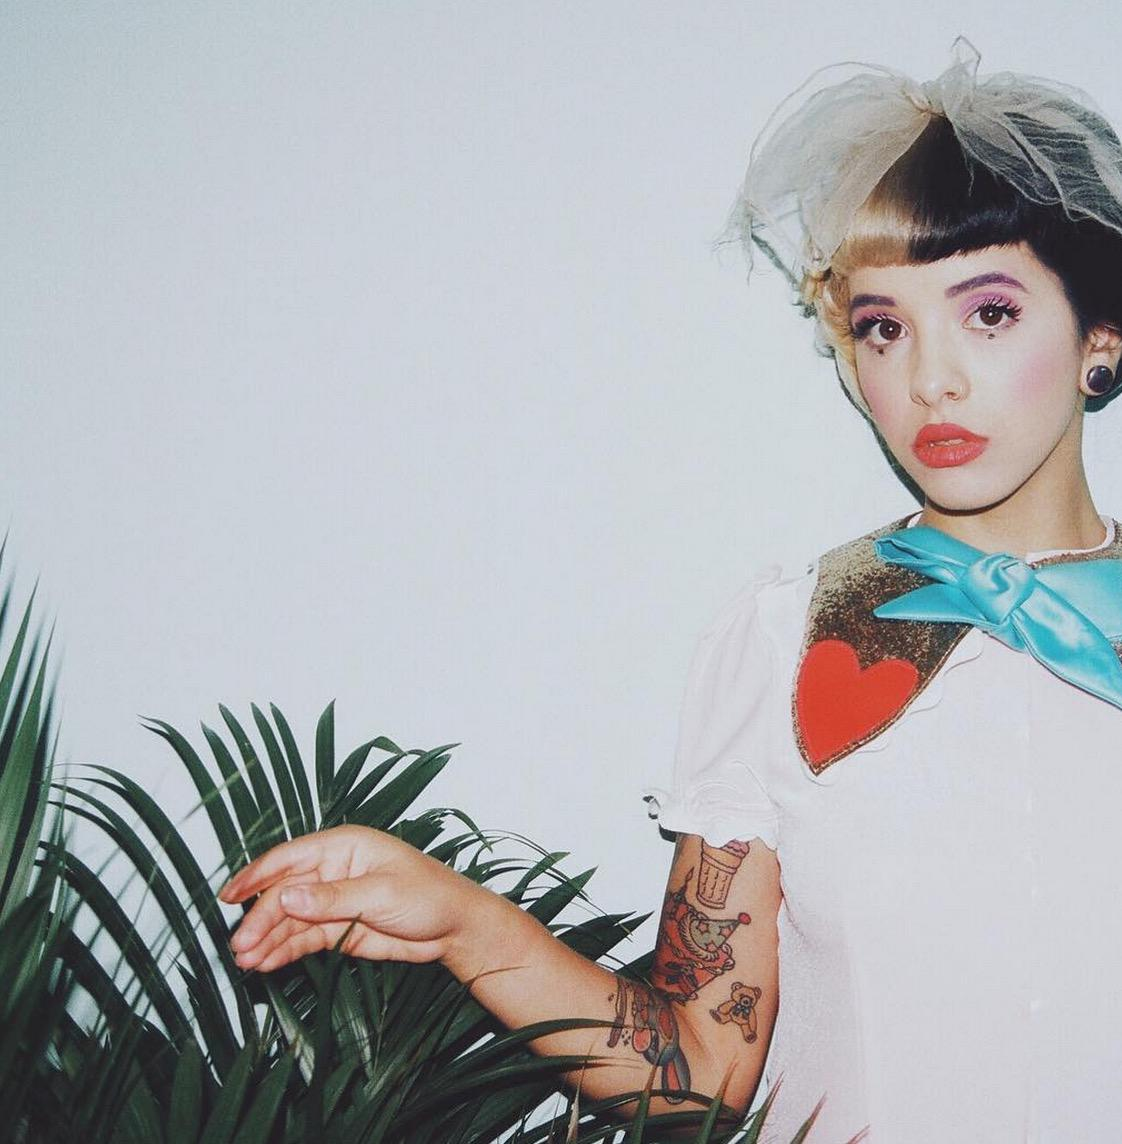 .@MelanieLBBH on now!  #SmallzysSurgery http://t.co/Nyx0hOLZuS